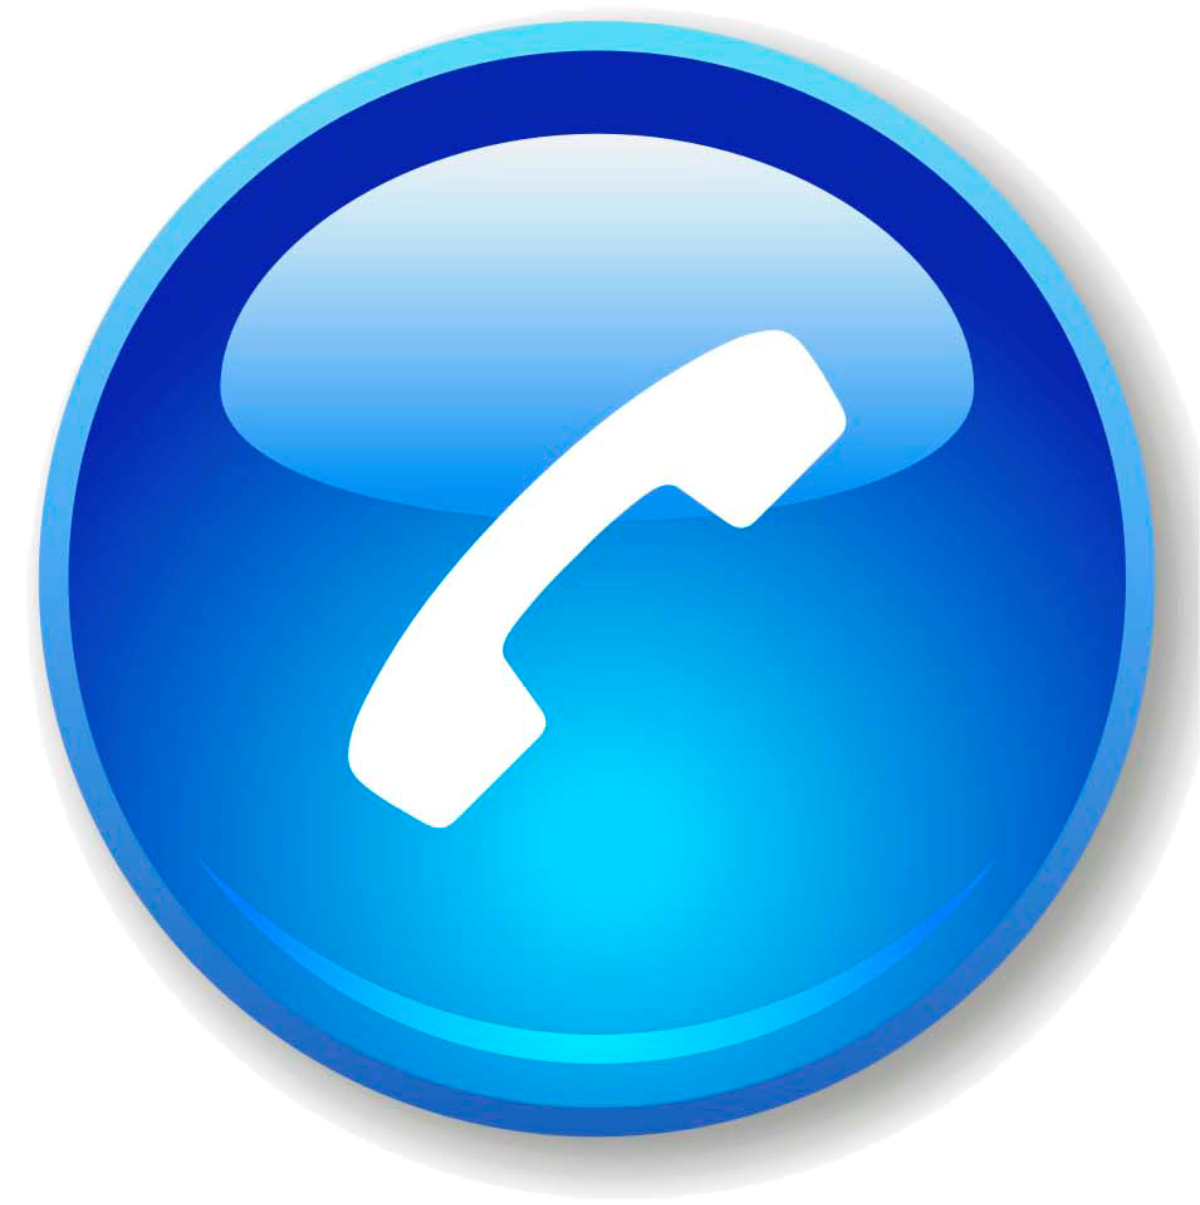 Icone telephone png. Phone